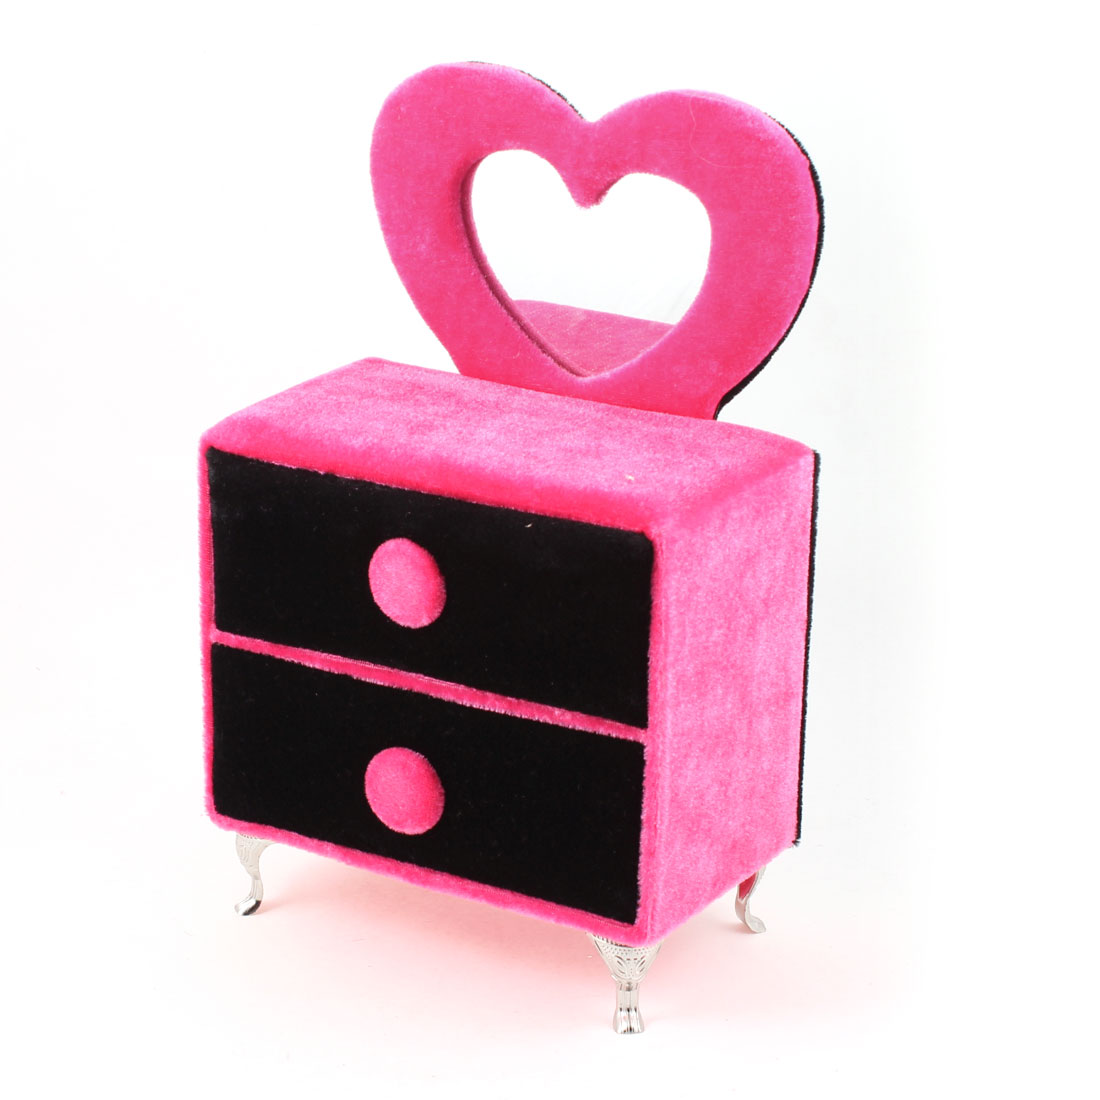 "Fuchsia Black Heart Shape Mirror Jewelry Rings Necklace Storage Boxes 9.4"" Height"